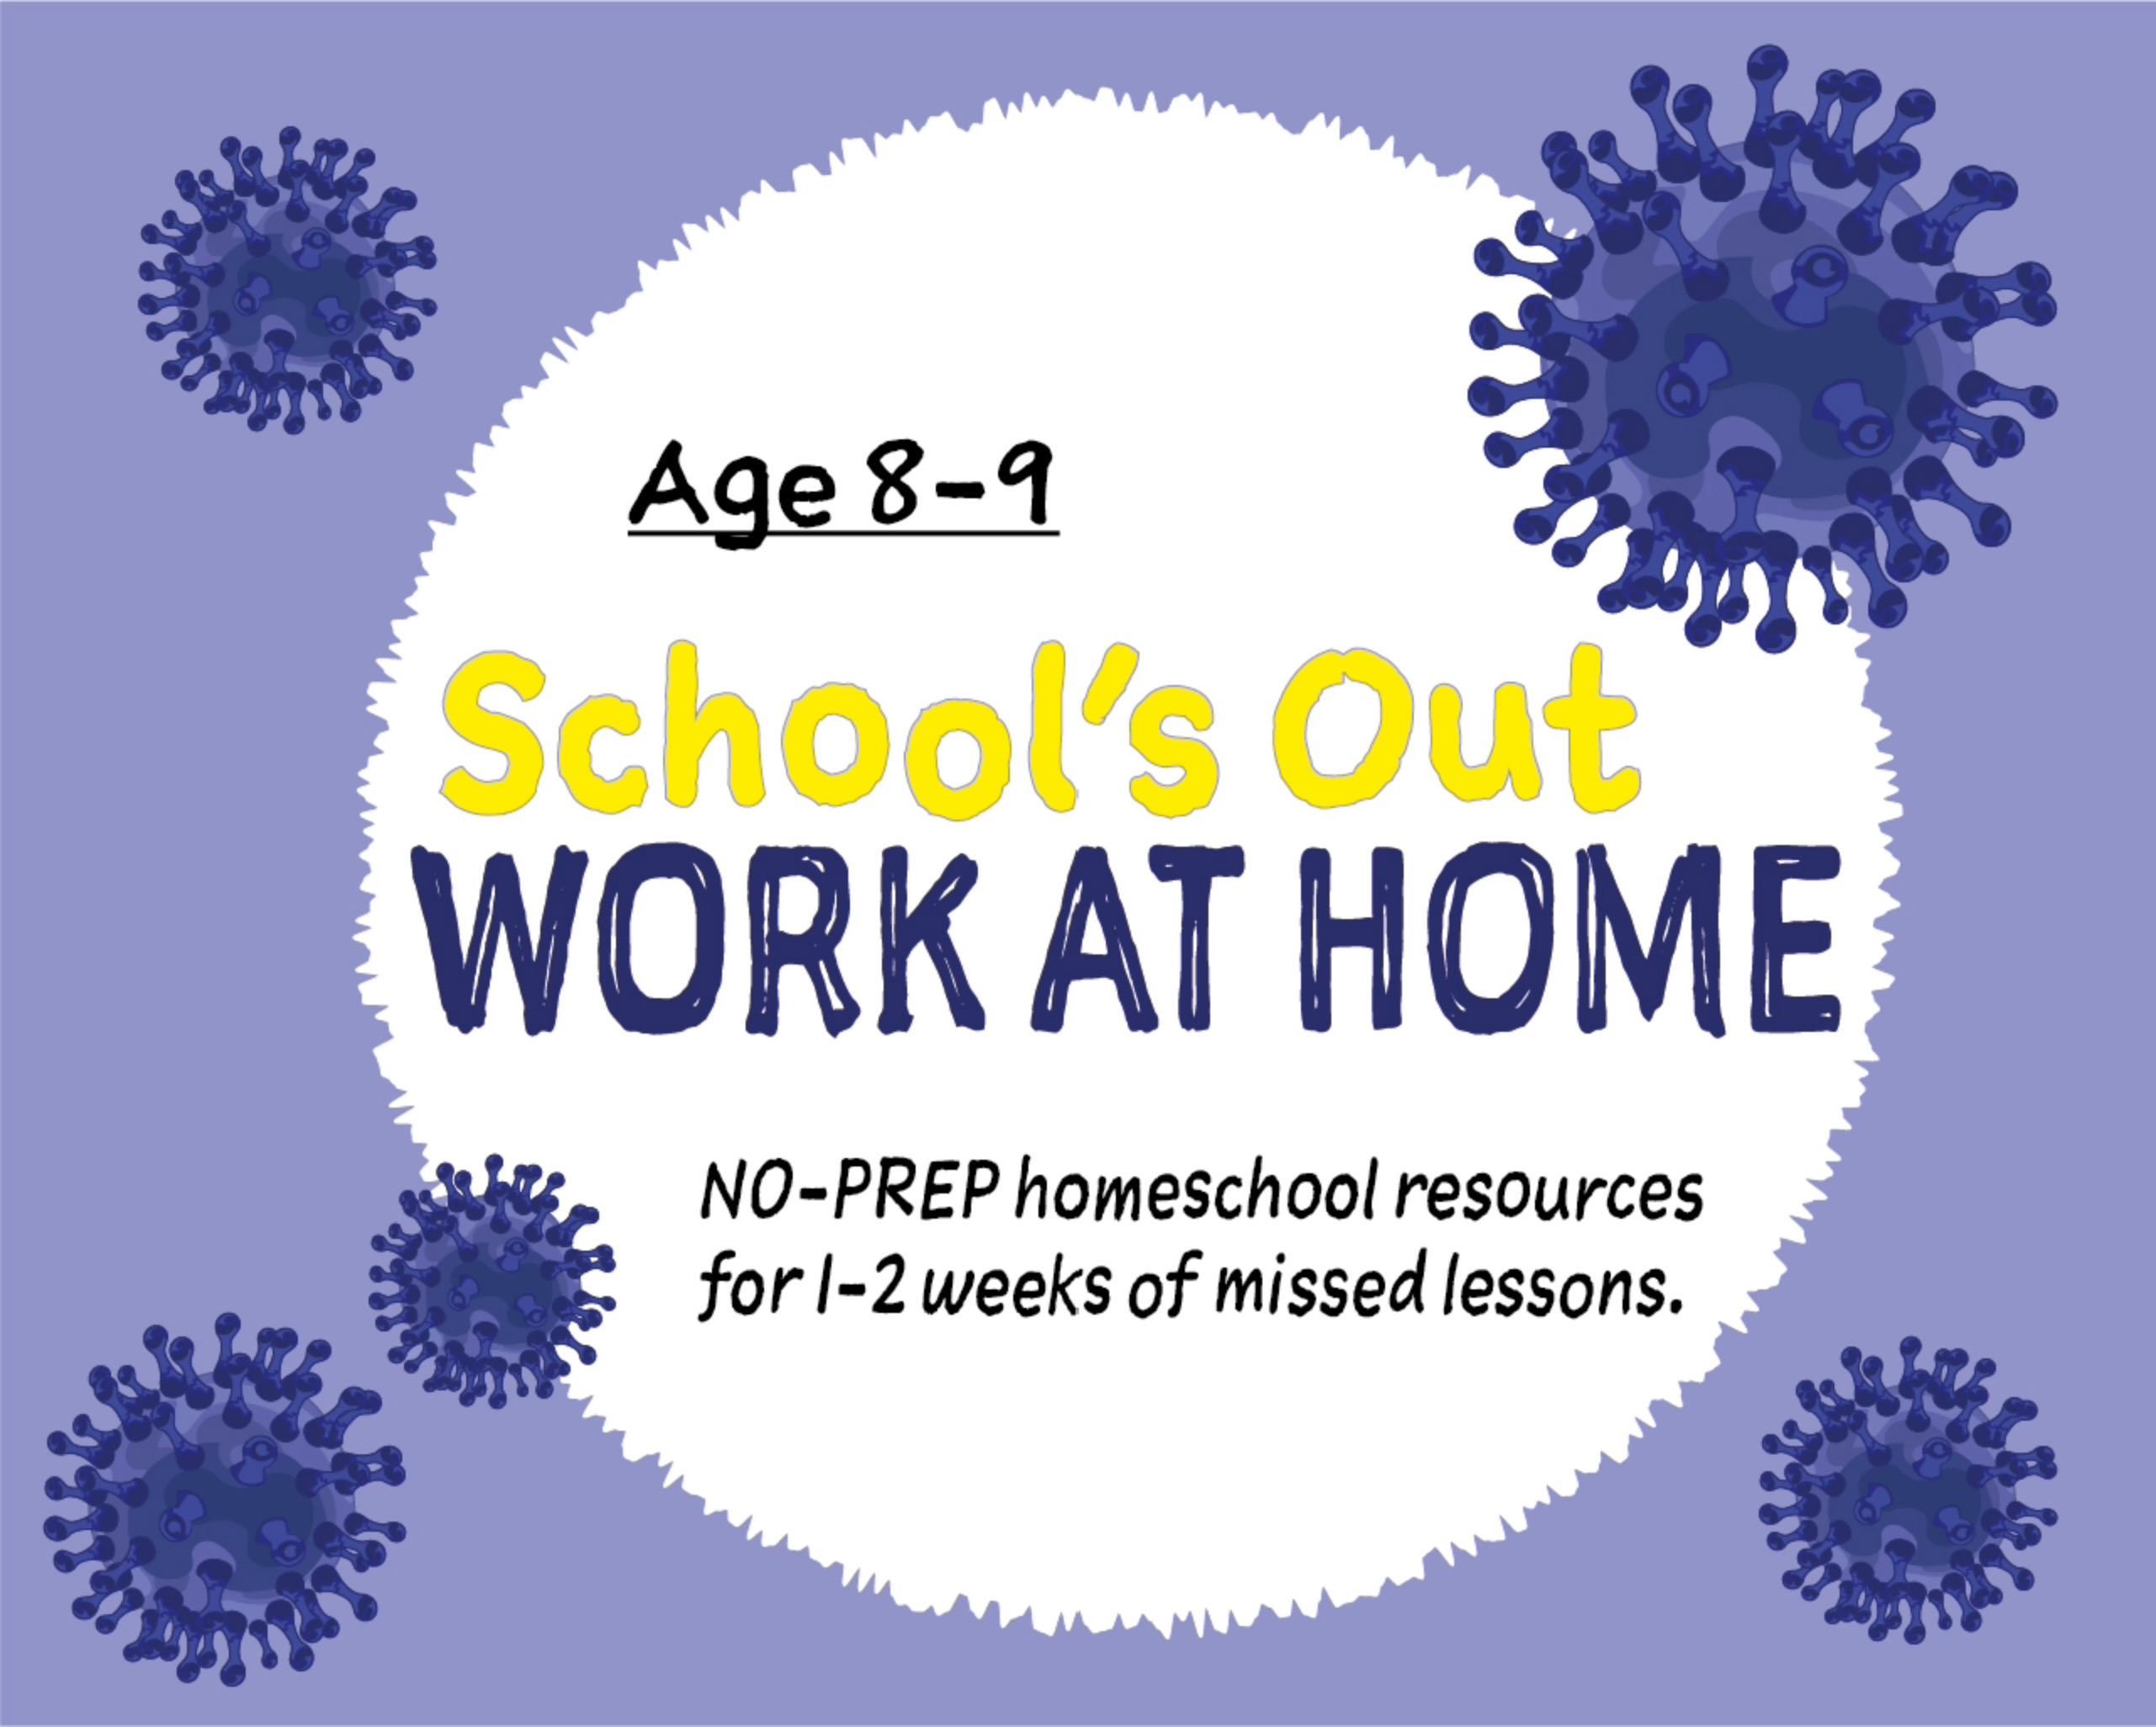 Schools Out For Coronavirus! Prepare For Schooling At Home (age 8-9 years) (year 4) (grade 3)